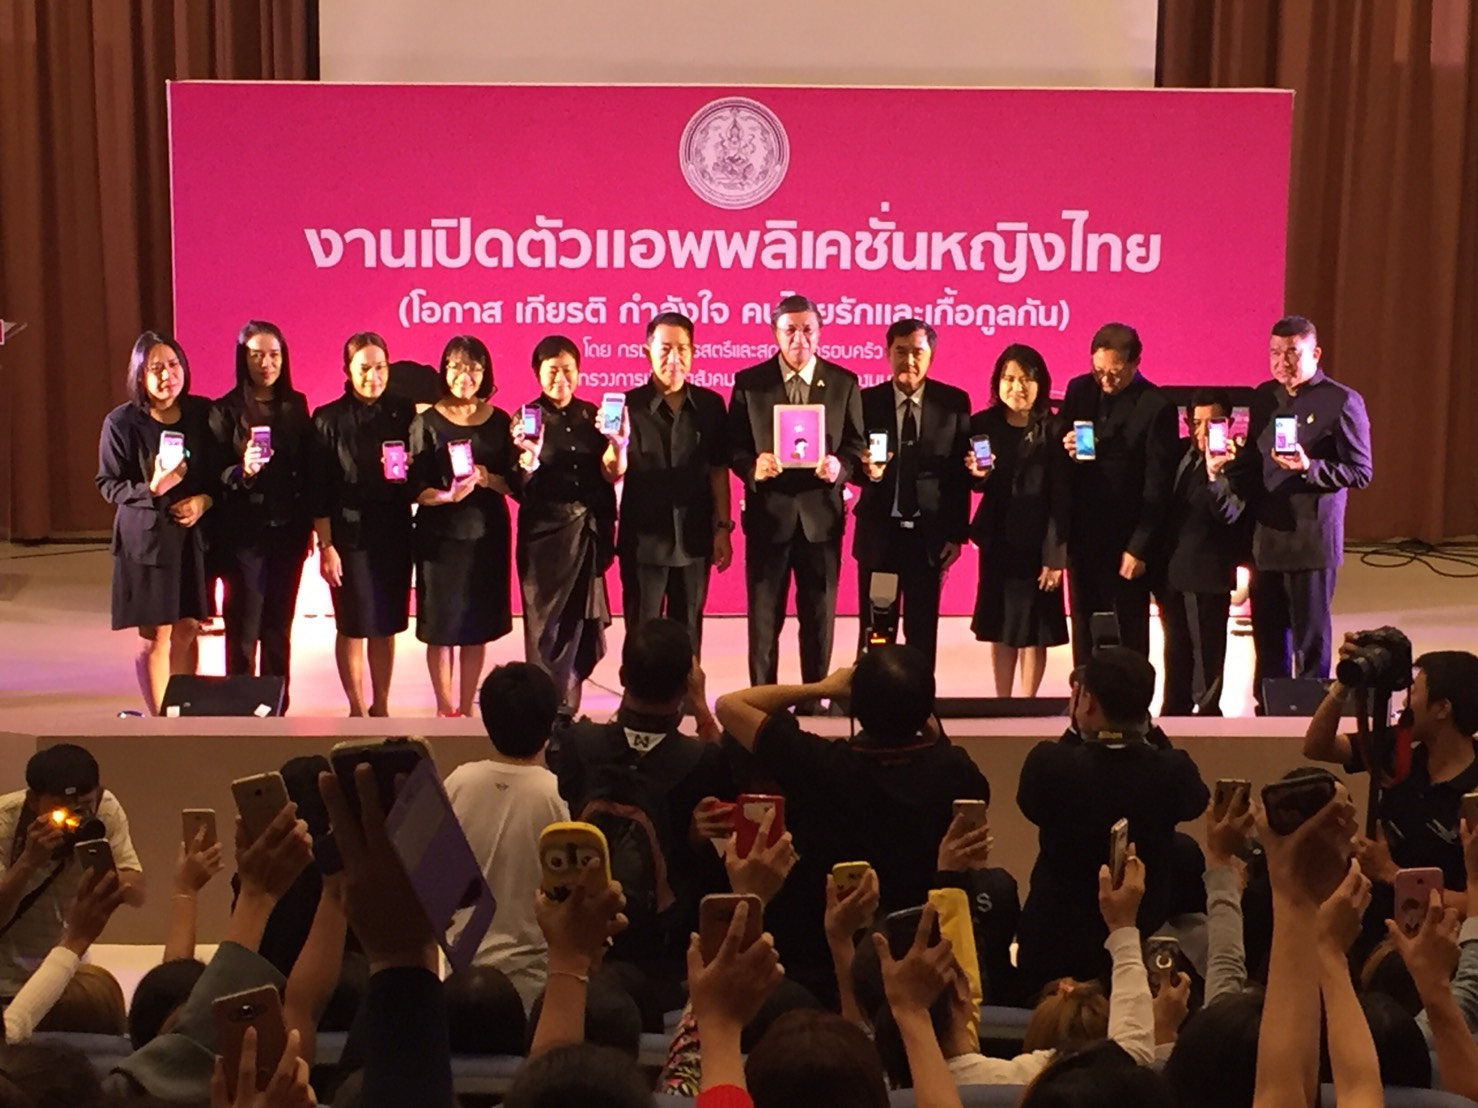 YingThai, the app and accompanying YingThai.com website were launched Feb. 9 by the Social Development and Human Security Ministry's Department of Women's Affairs and Family Development in Chonburi.